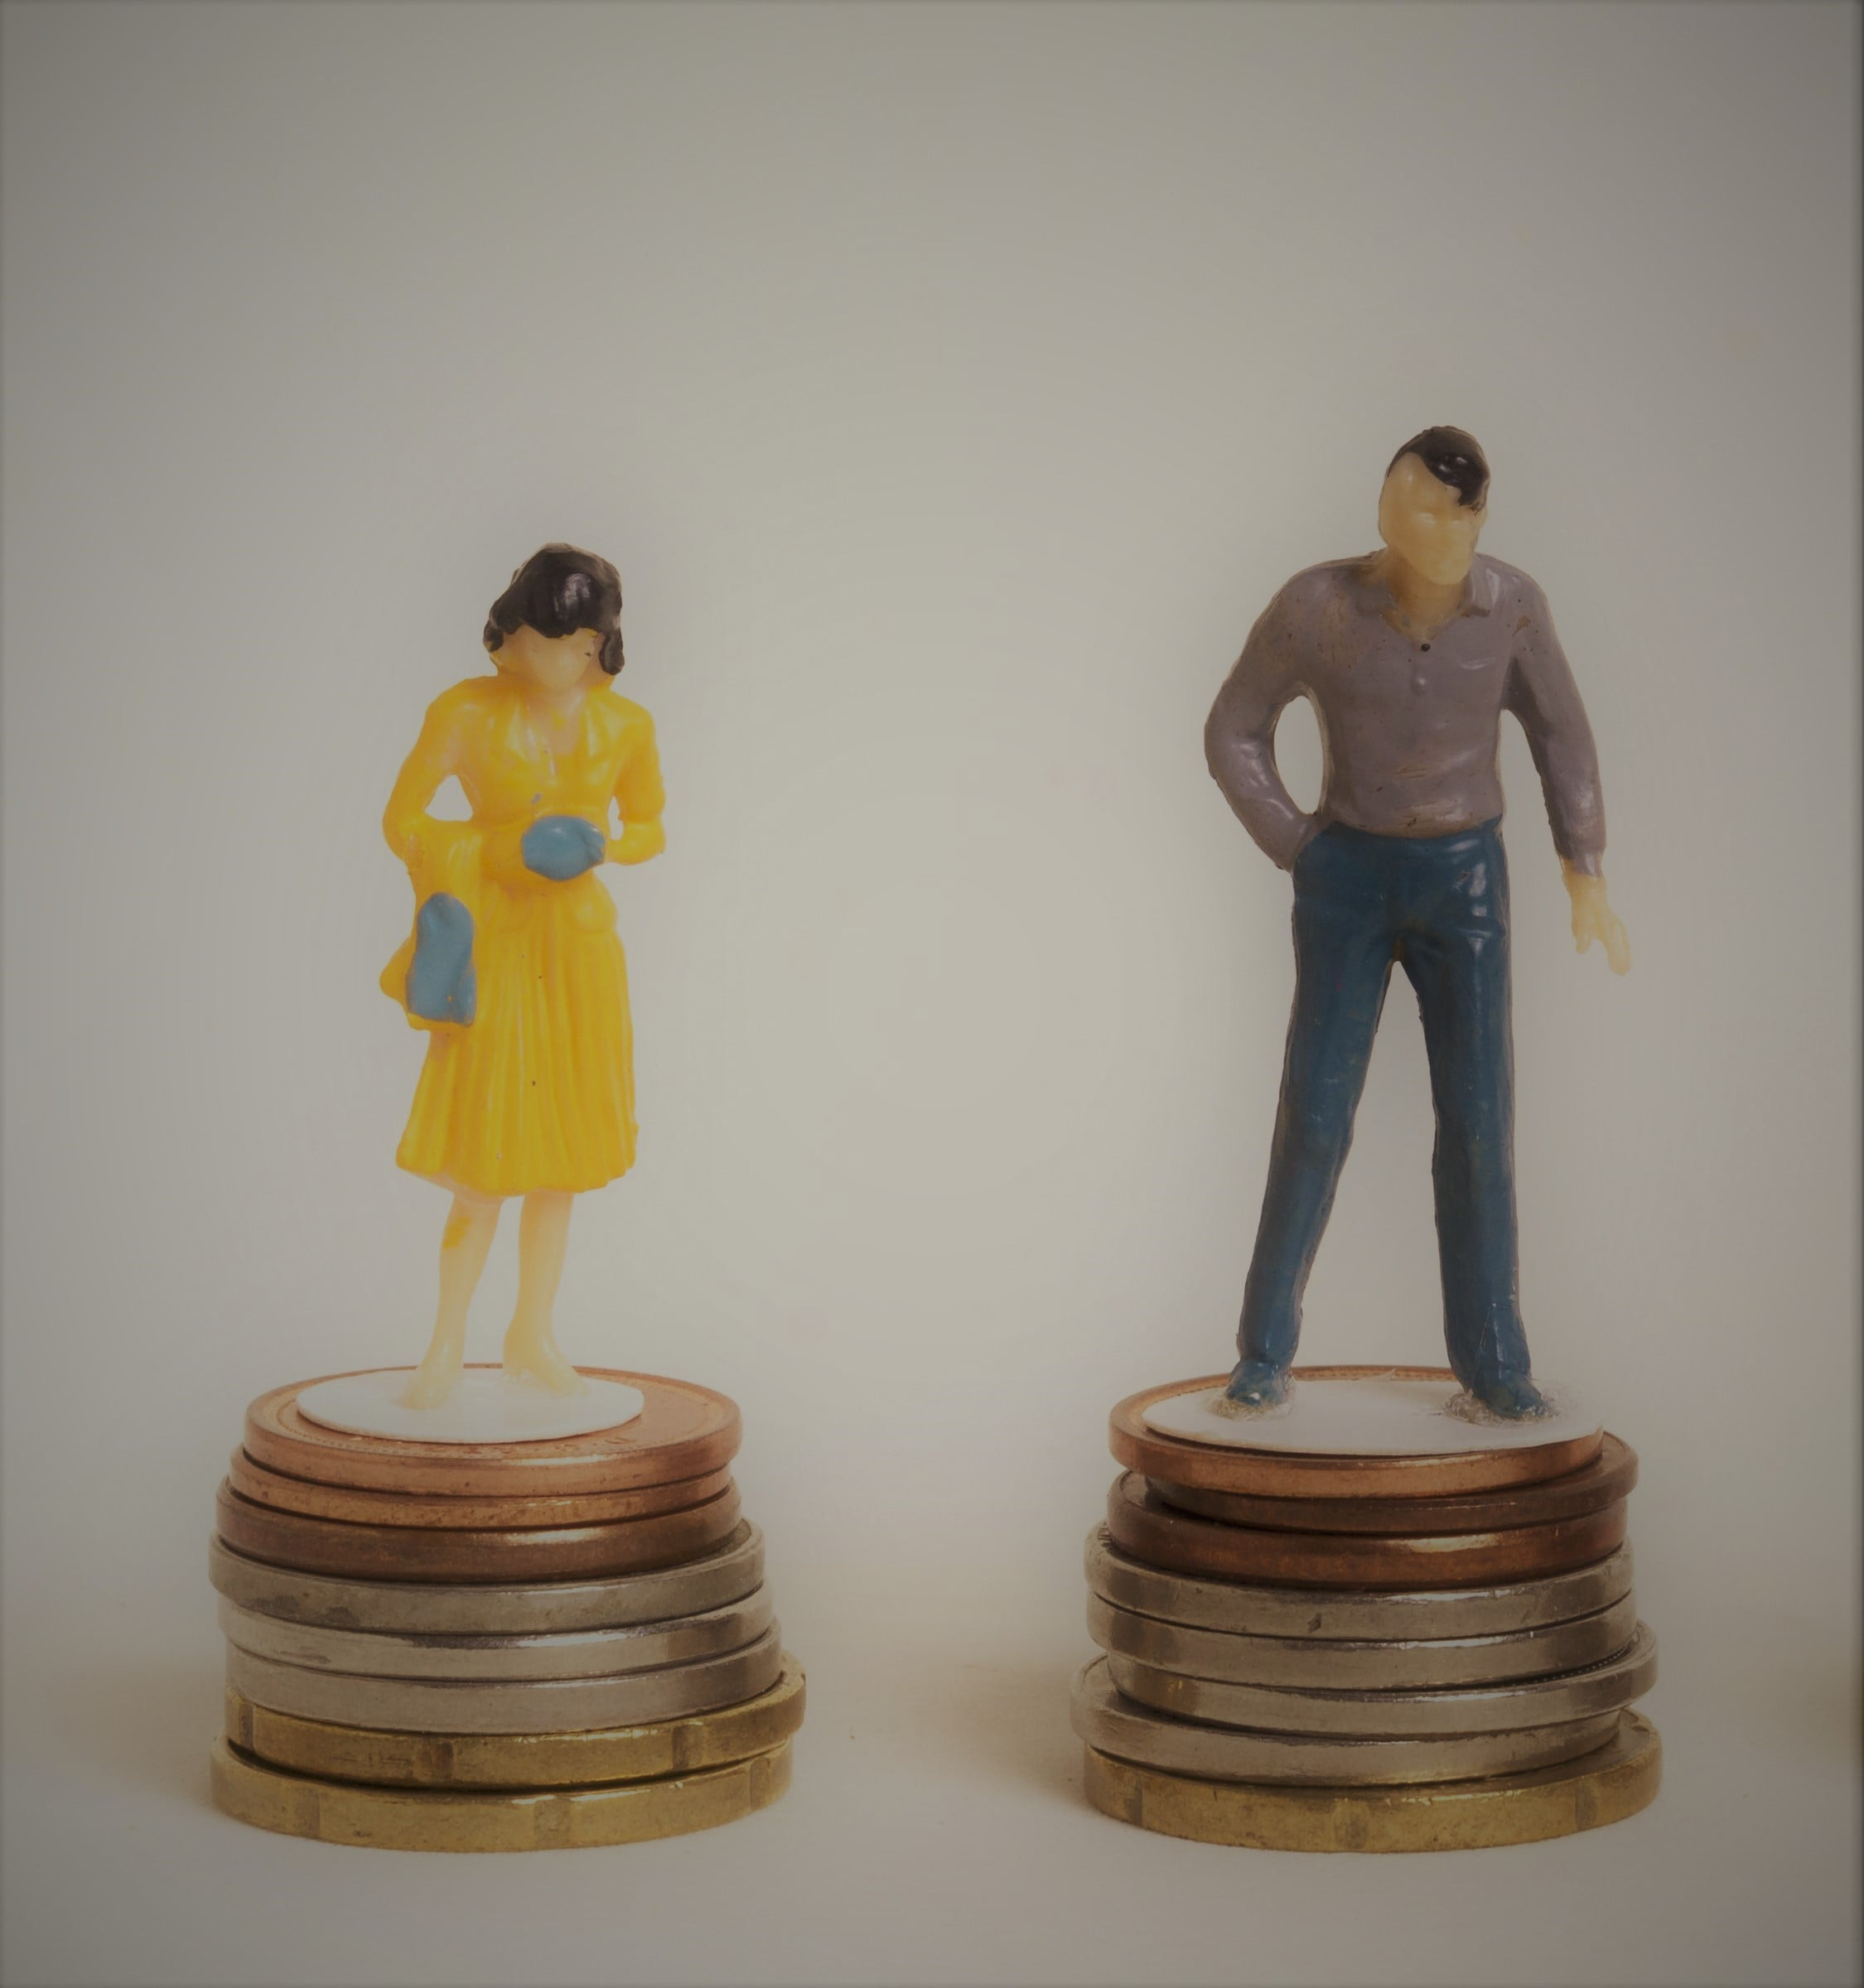 business-man-and-woman-sitting-on-equal-piles-of-coins-min.jpg